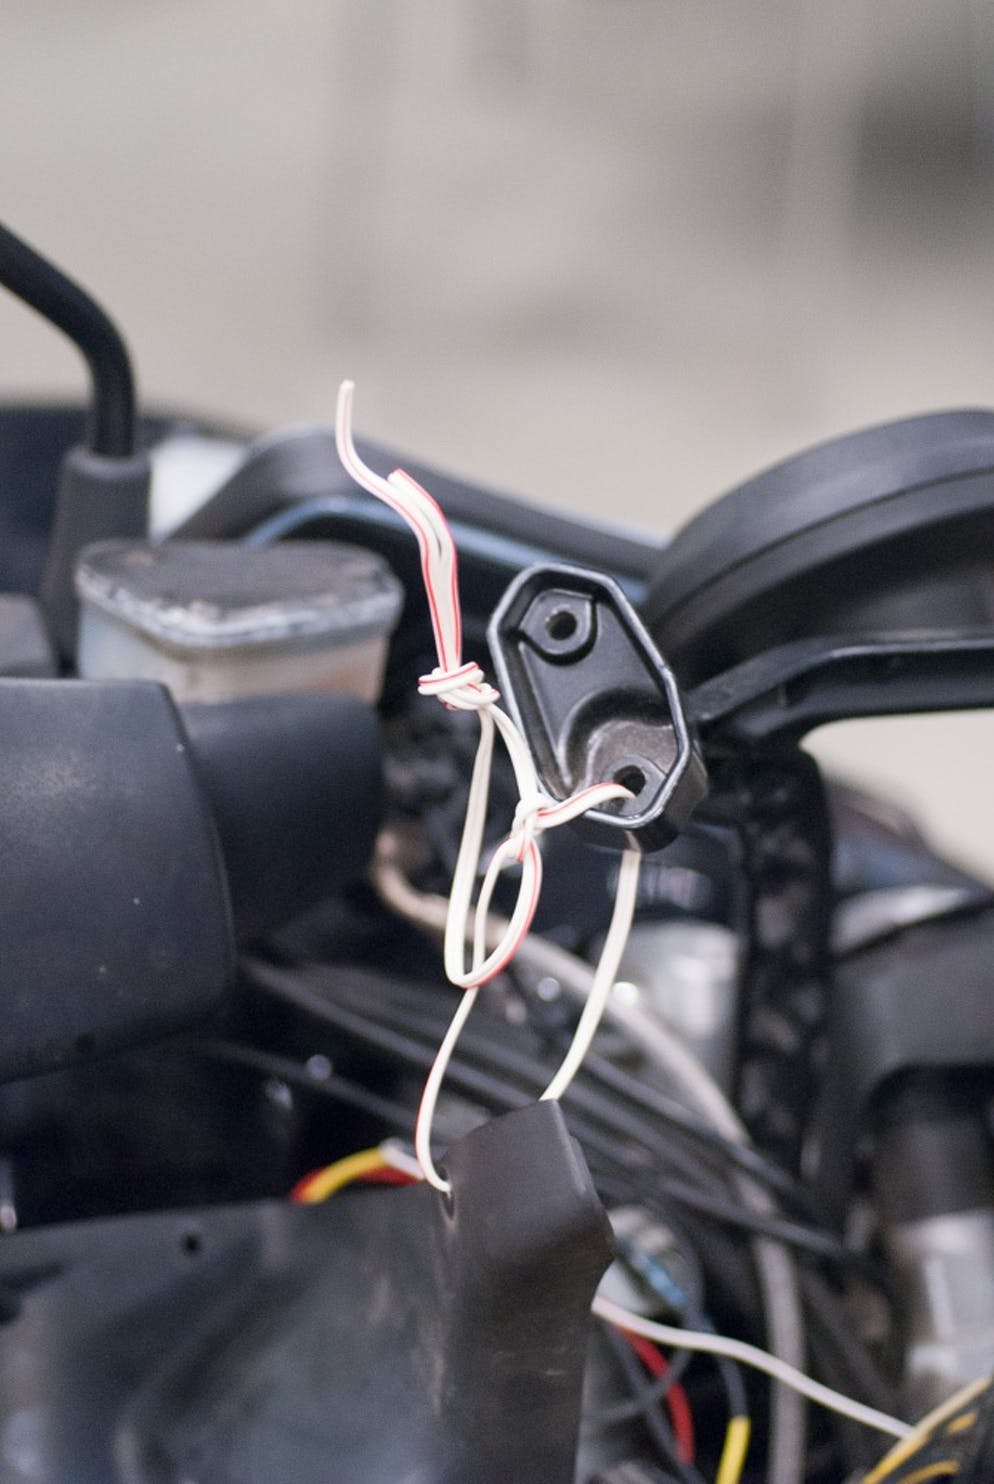 How To Tips For Installing Auxiliary Lights On Your Motorcycle Wiring A Wall Light Ing Uk Including Wire Use Quality Stranded Actual Electrical Work Because Subpar Might Strand You Lighting